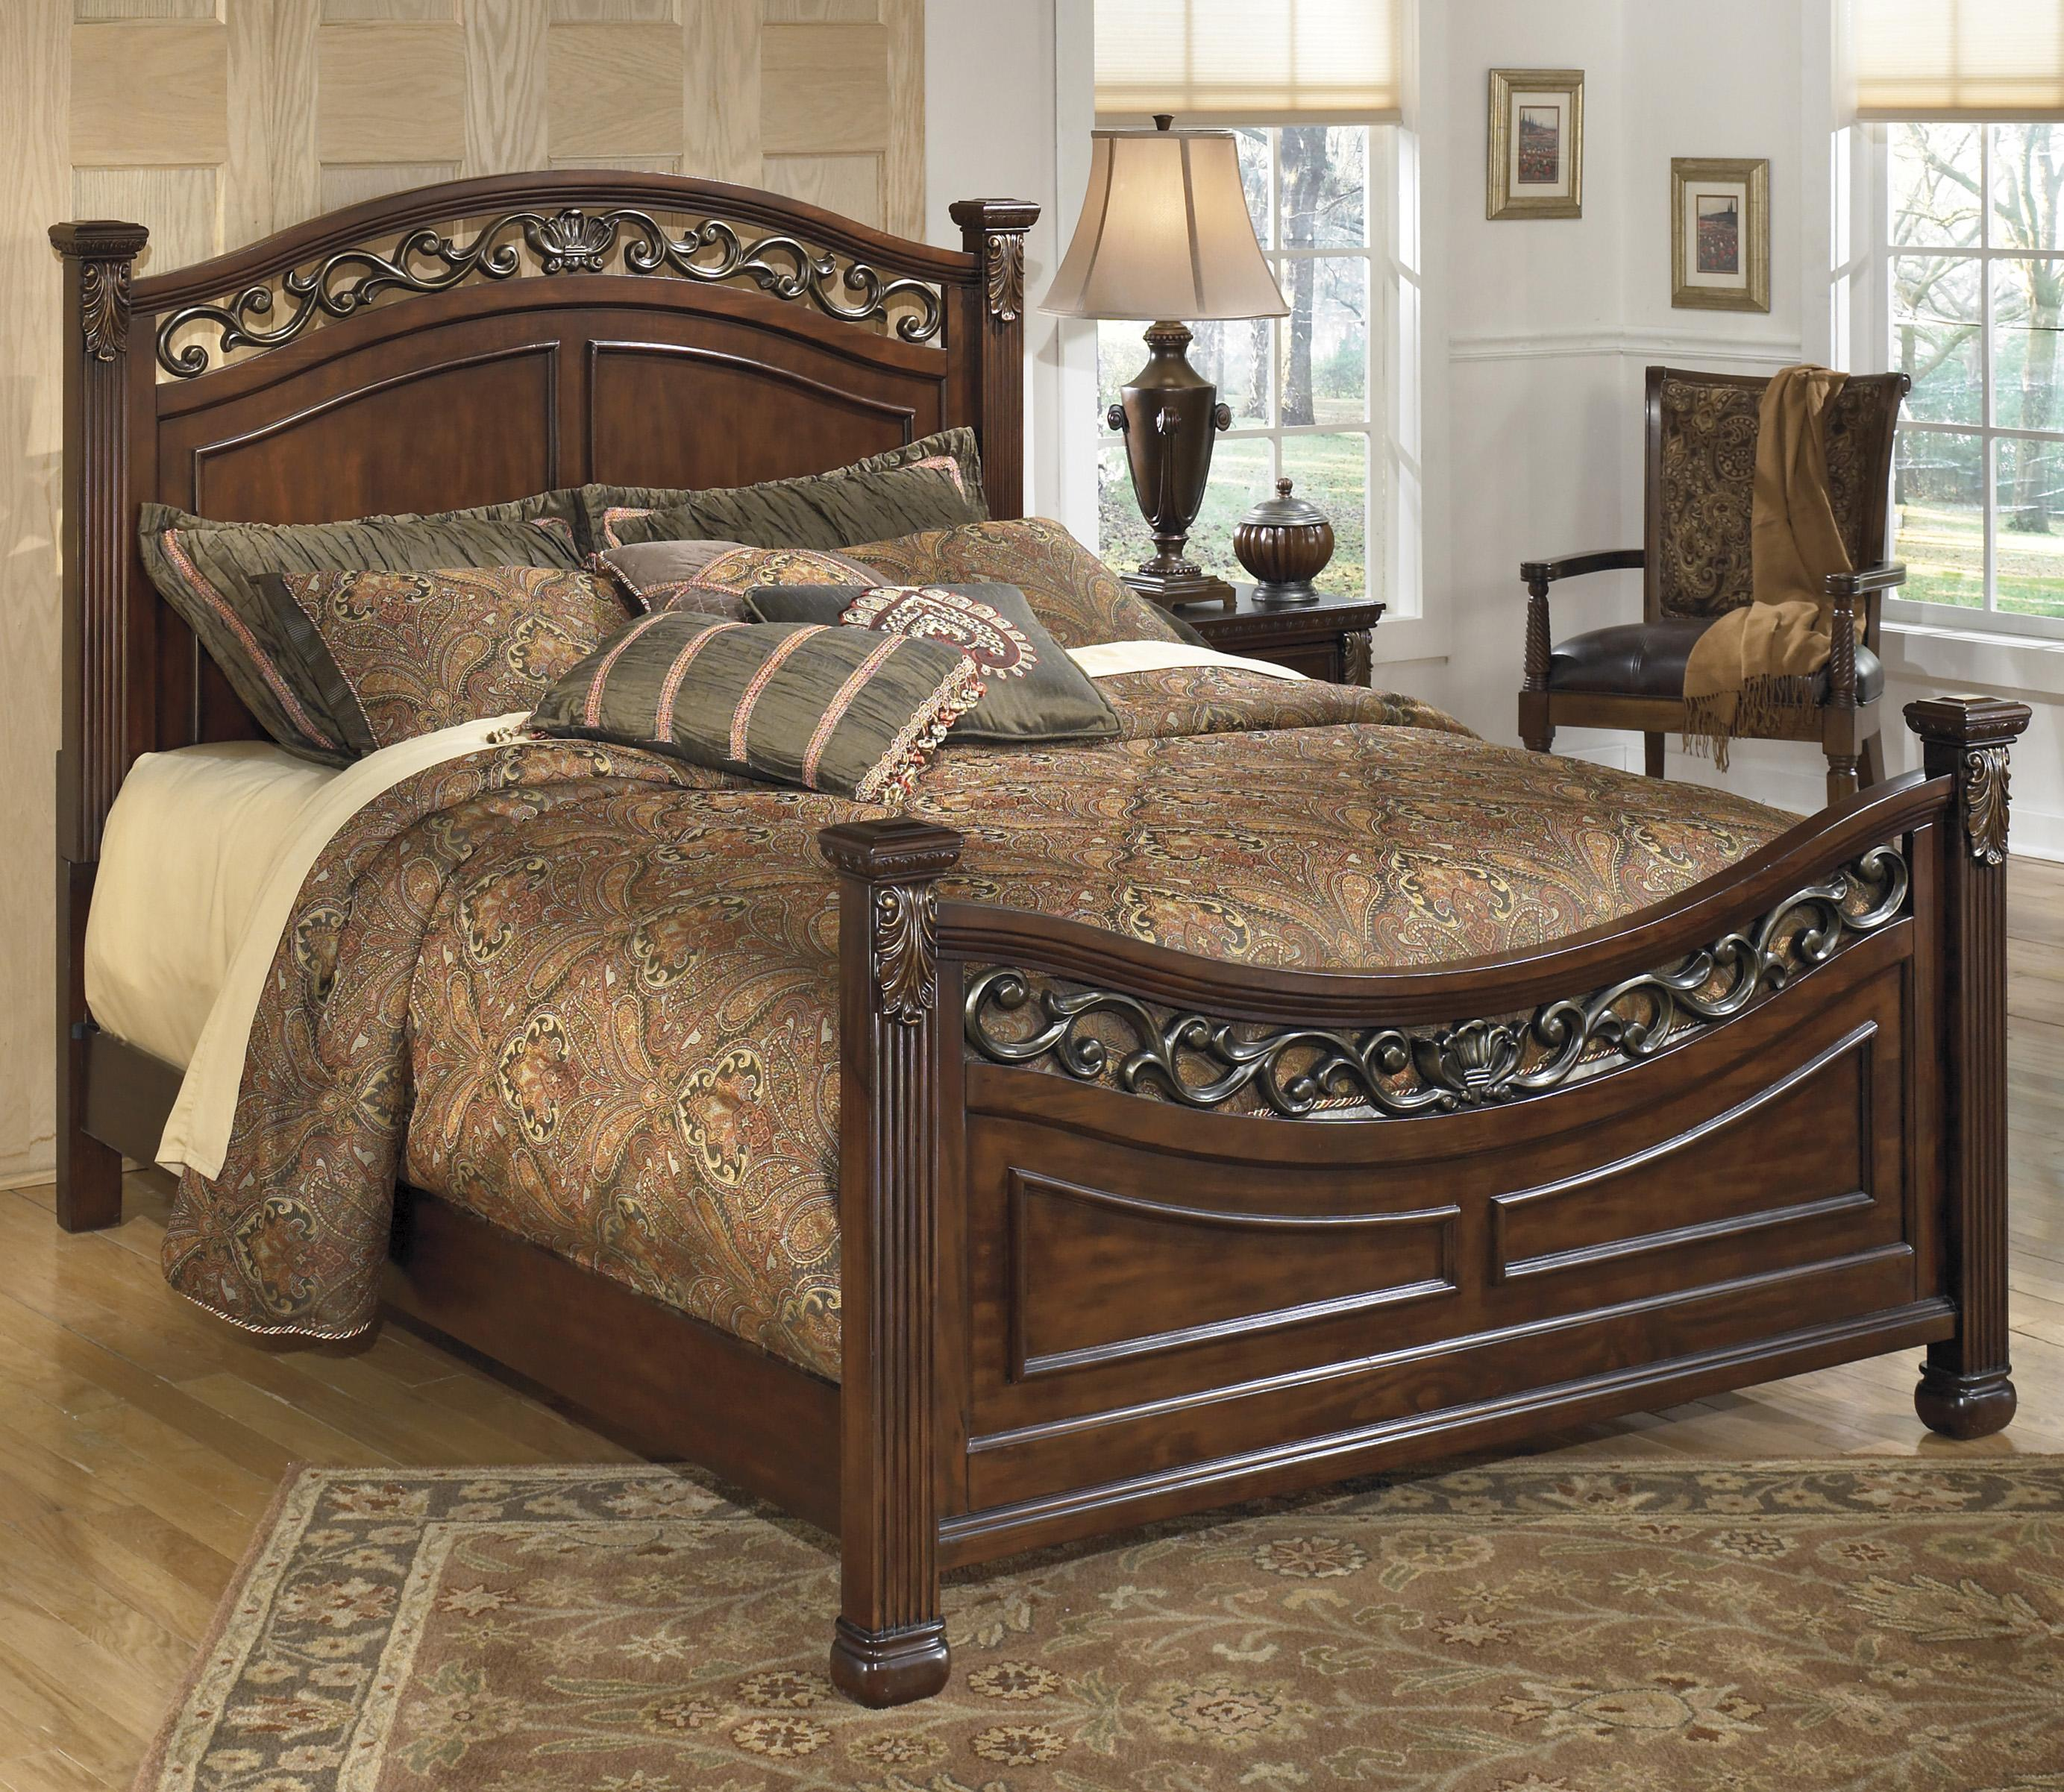 Signature Design By Ashley Leahlyn Traditional King Panel Bed With Ornate Headboard And